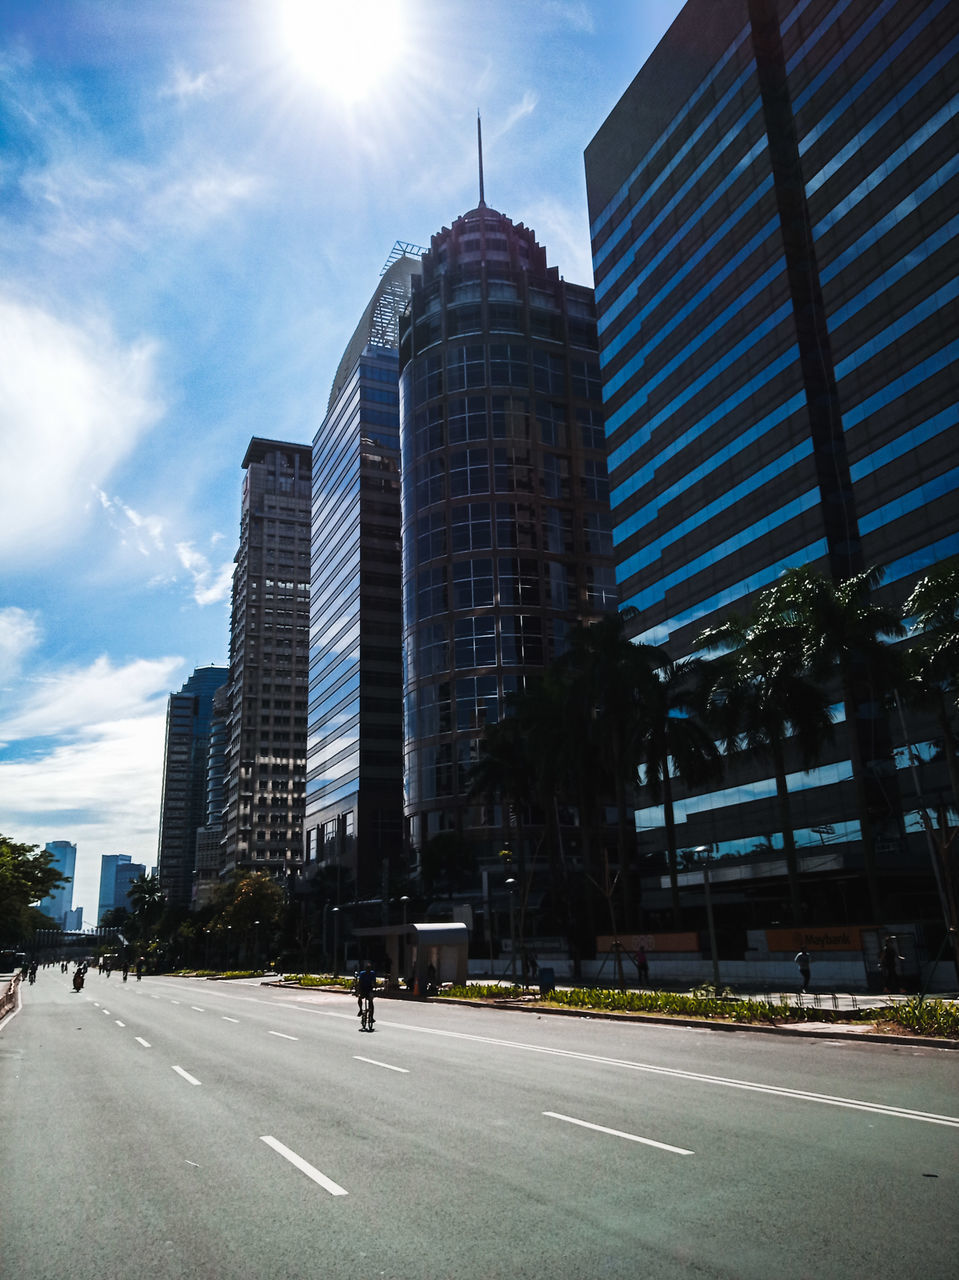 city, building exterior, built structure, architecture, road, sky, building, office building exterior, street, transportation, office, tall - high, nature, skyscraper, modern, symbol, tower, cloud - sky, sunlight, day, no people, outdoors, financial district